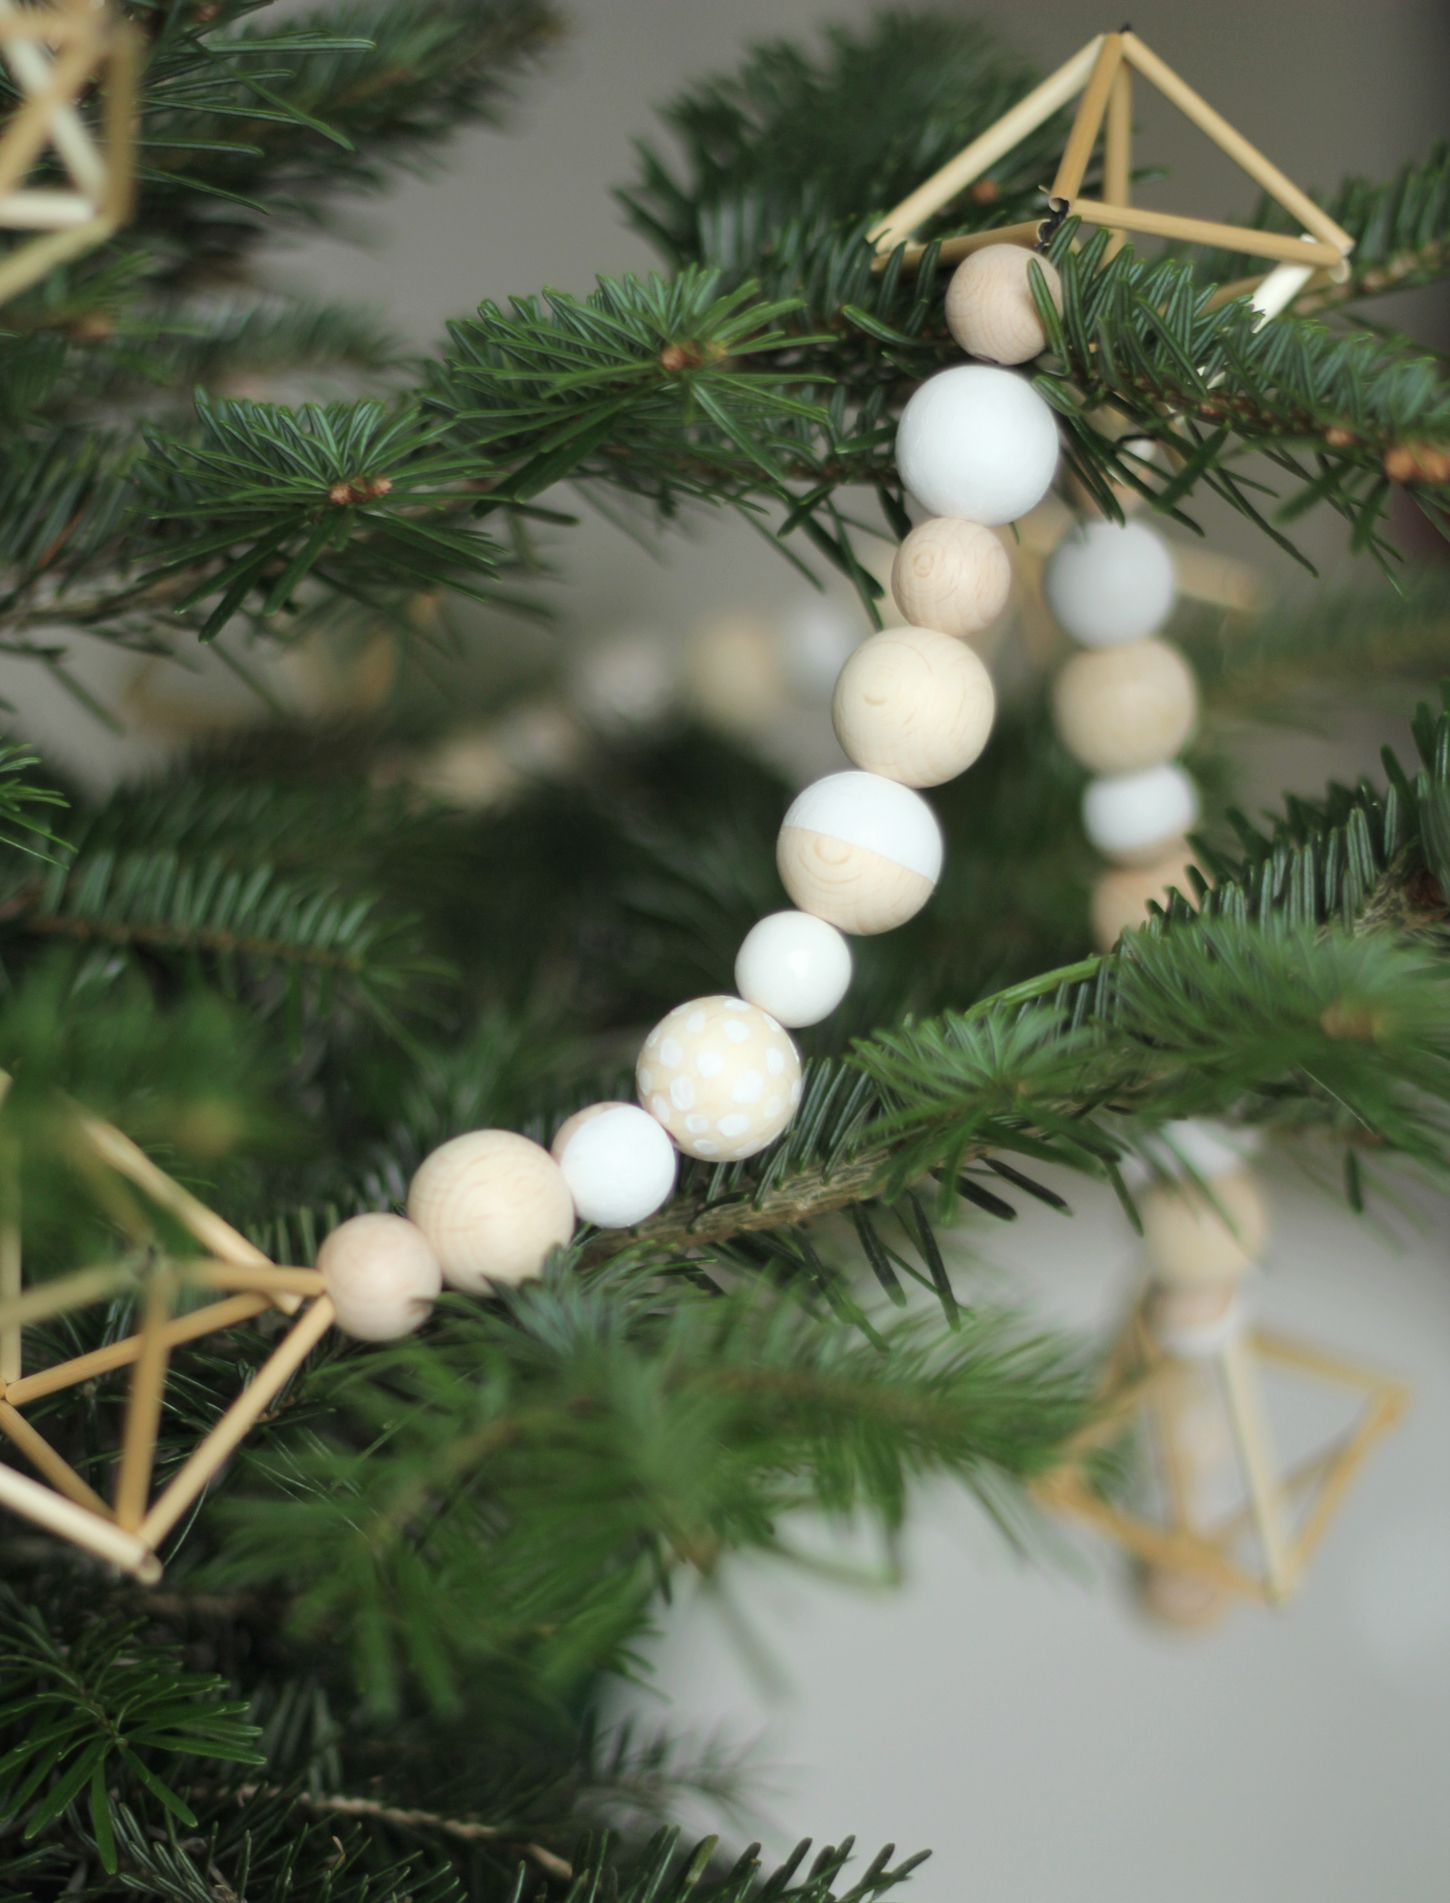 15 minimalist christmas decor ideas - Minimalist Christmas Decor